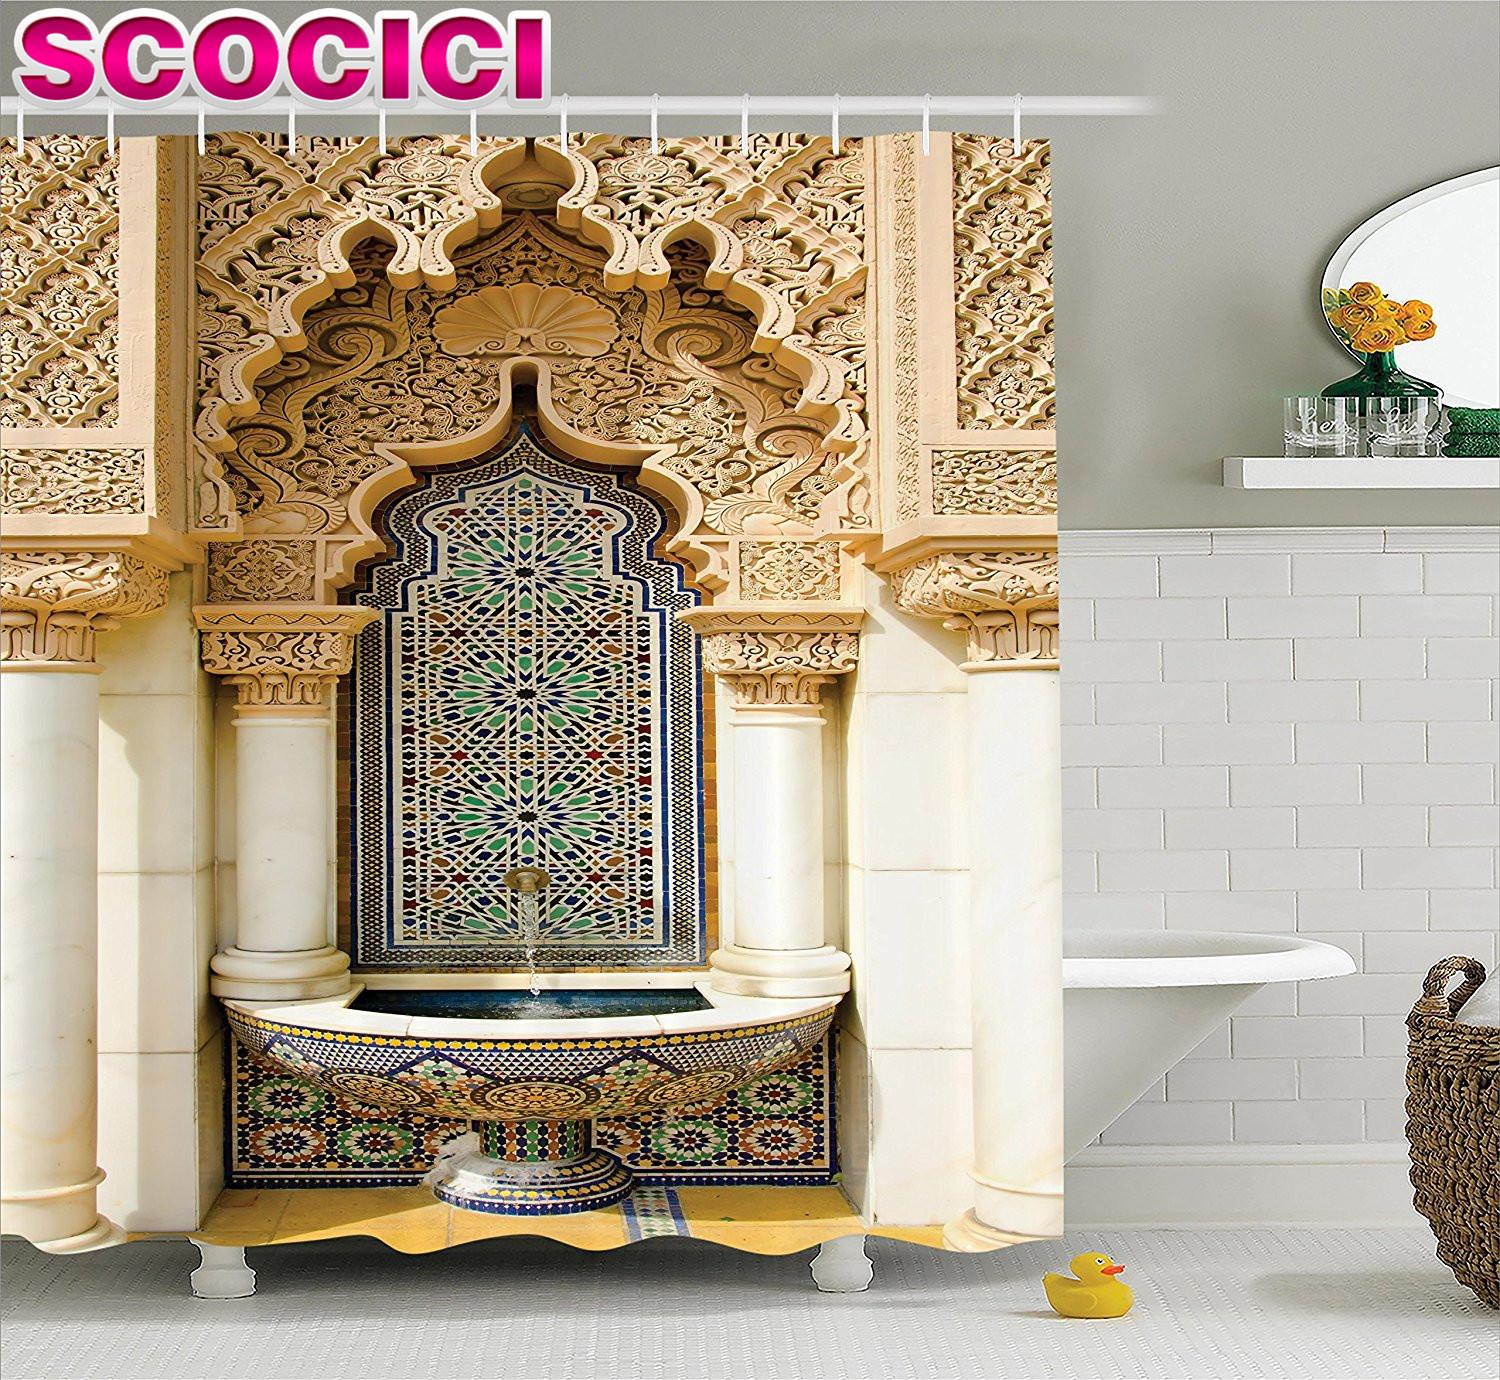 DHgate & Moroccan Decor Shower Curtain Vintage Building Design Islamic Housing Art Historic Exterior Facade Mosaic Picture Polyester Fabr